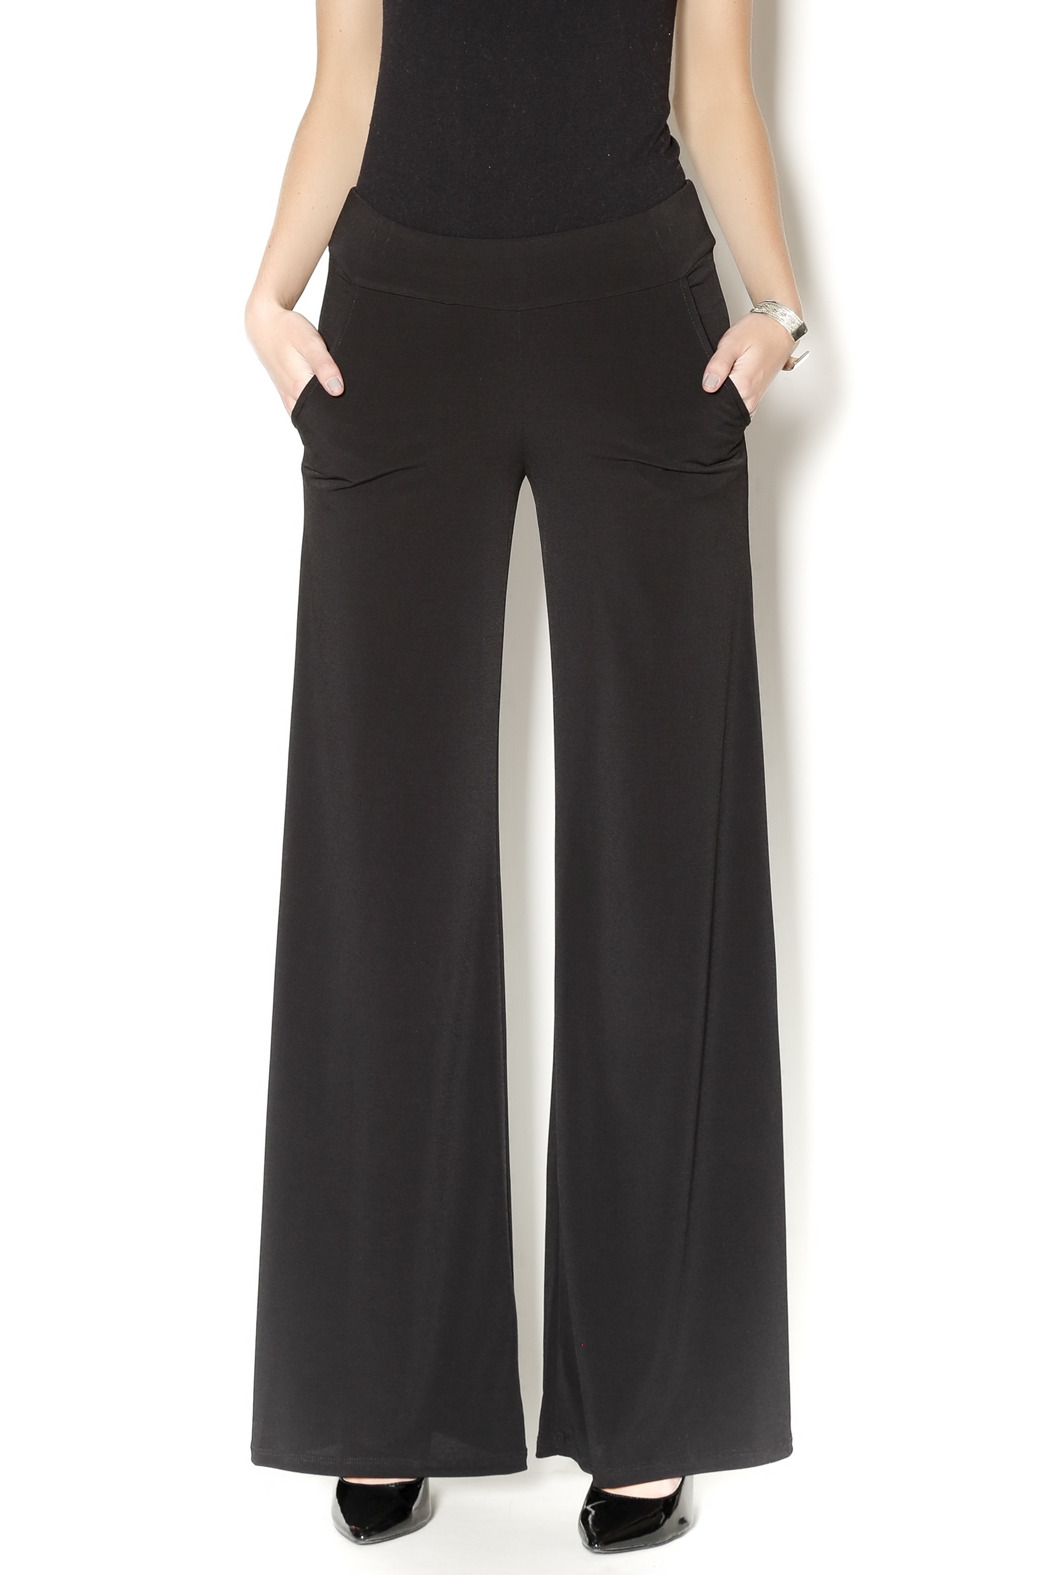 Veronica M Black Palazzo Pants From Atlanta By Squash